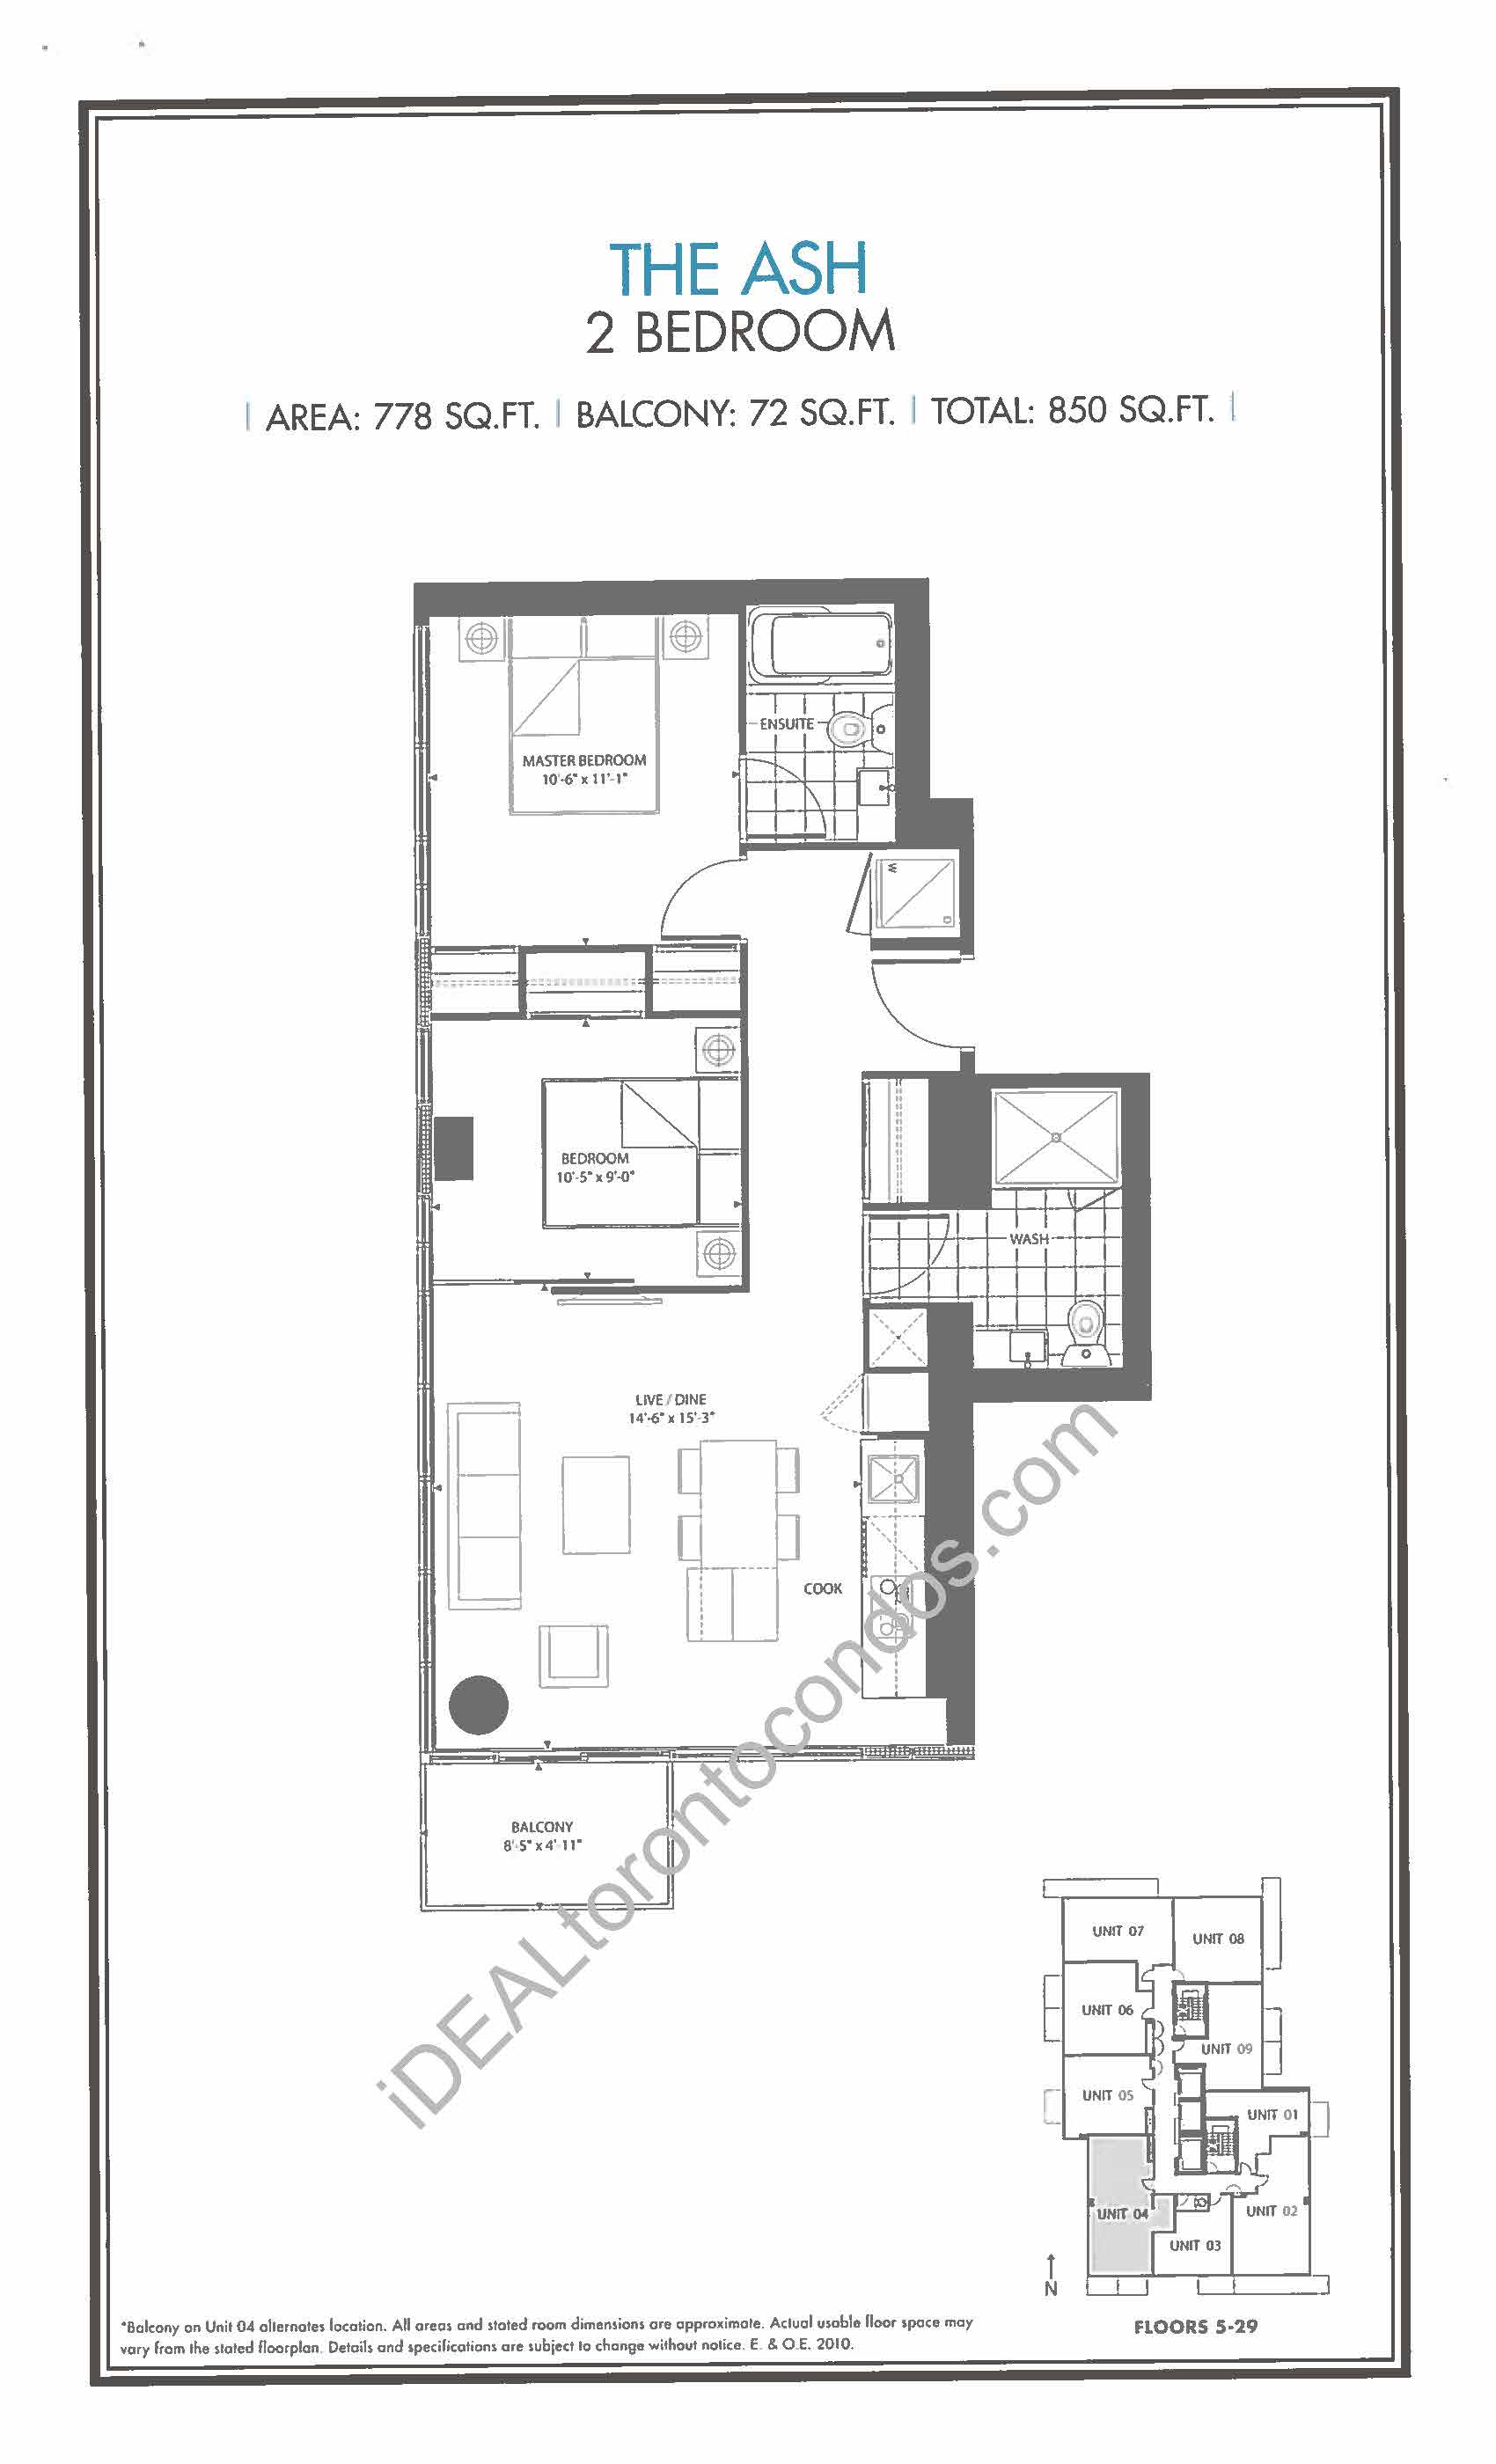 The Ash - 2 Bedroom